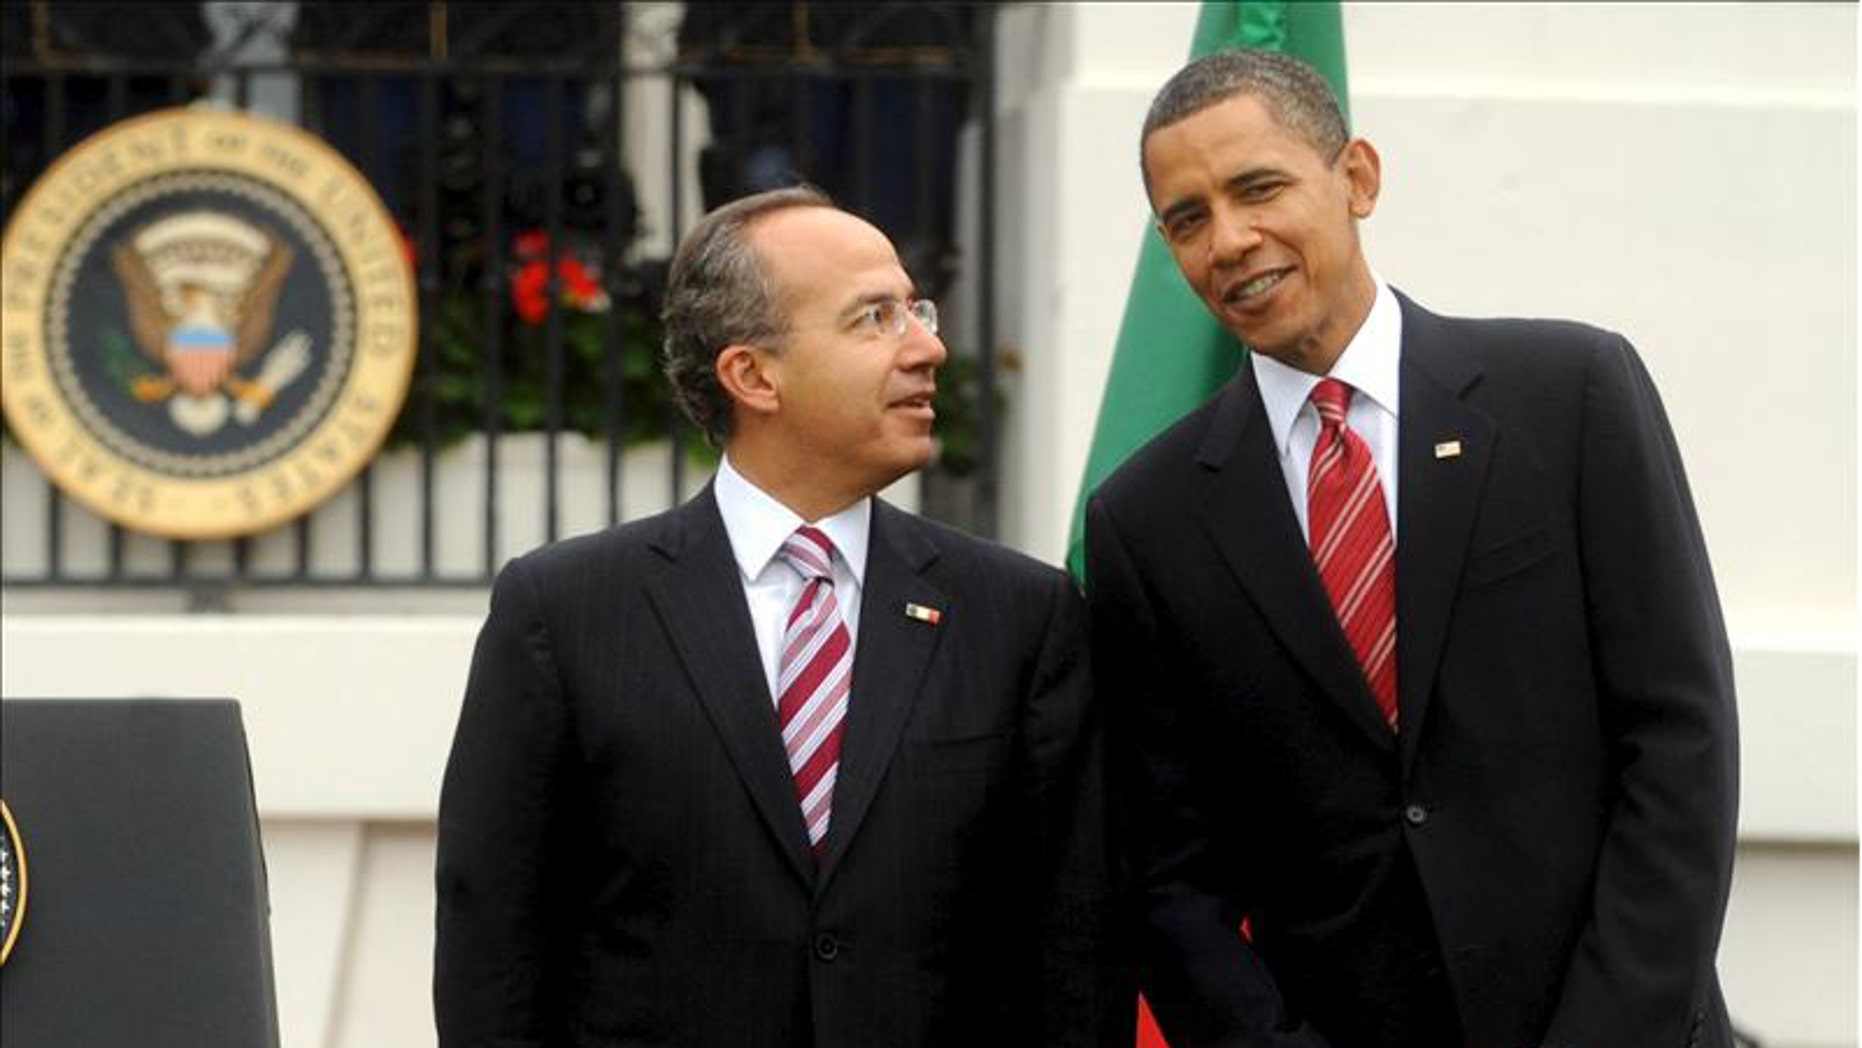 Thursday: President Obama poses for photos with Mexican President Felipe Calderon.